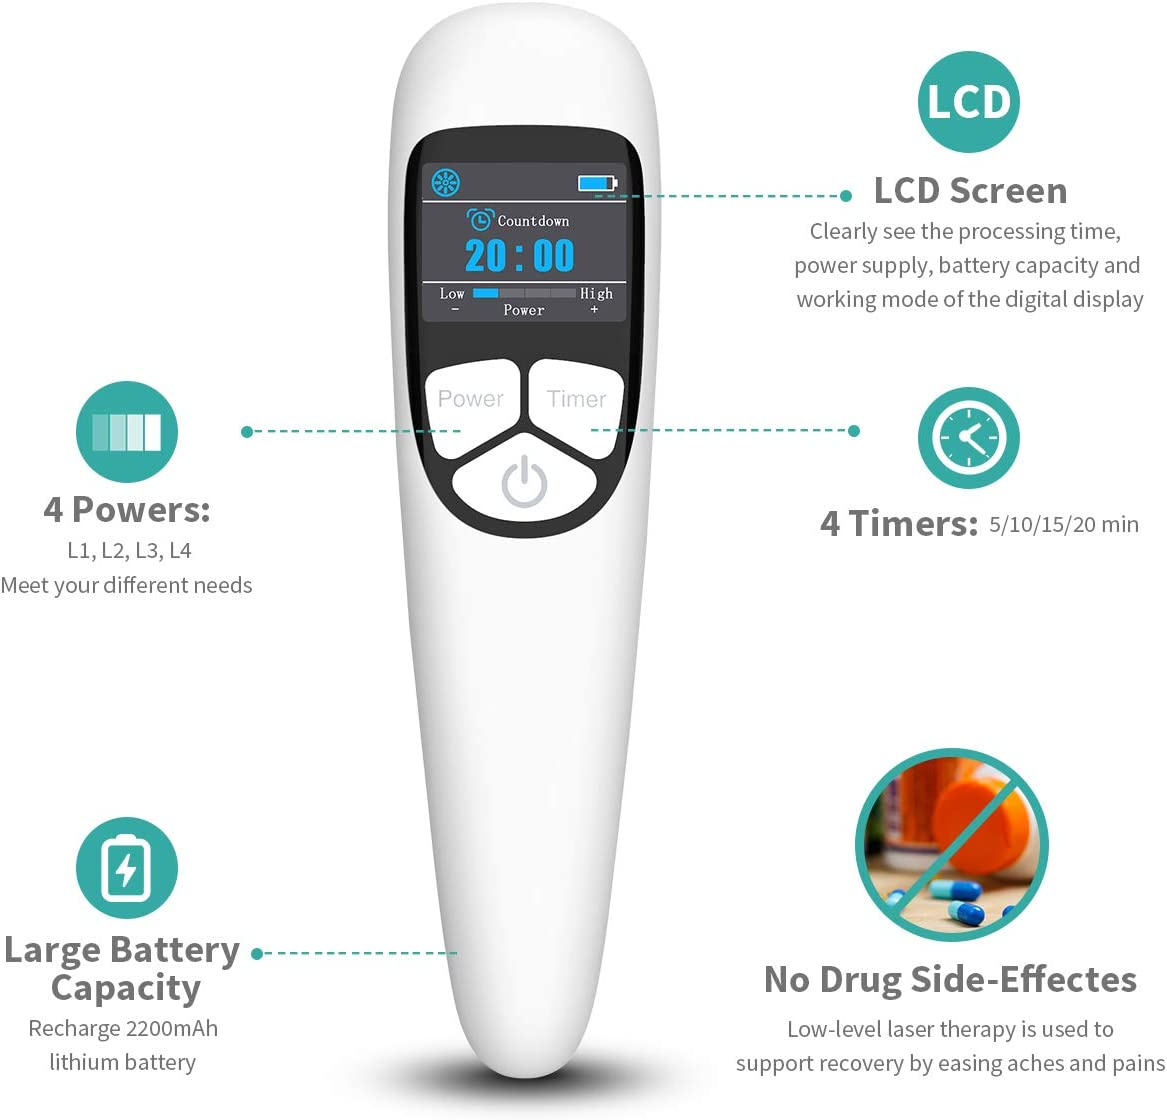 Cold Laser Red Light Therapy Device with Display, Pain Relief, Handhold, Low Level Infrared Light for Knee, Shoulder, Back, Joint and Muscle Pain Reliever, Safe for Pet, 4 Power/4 Timer